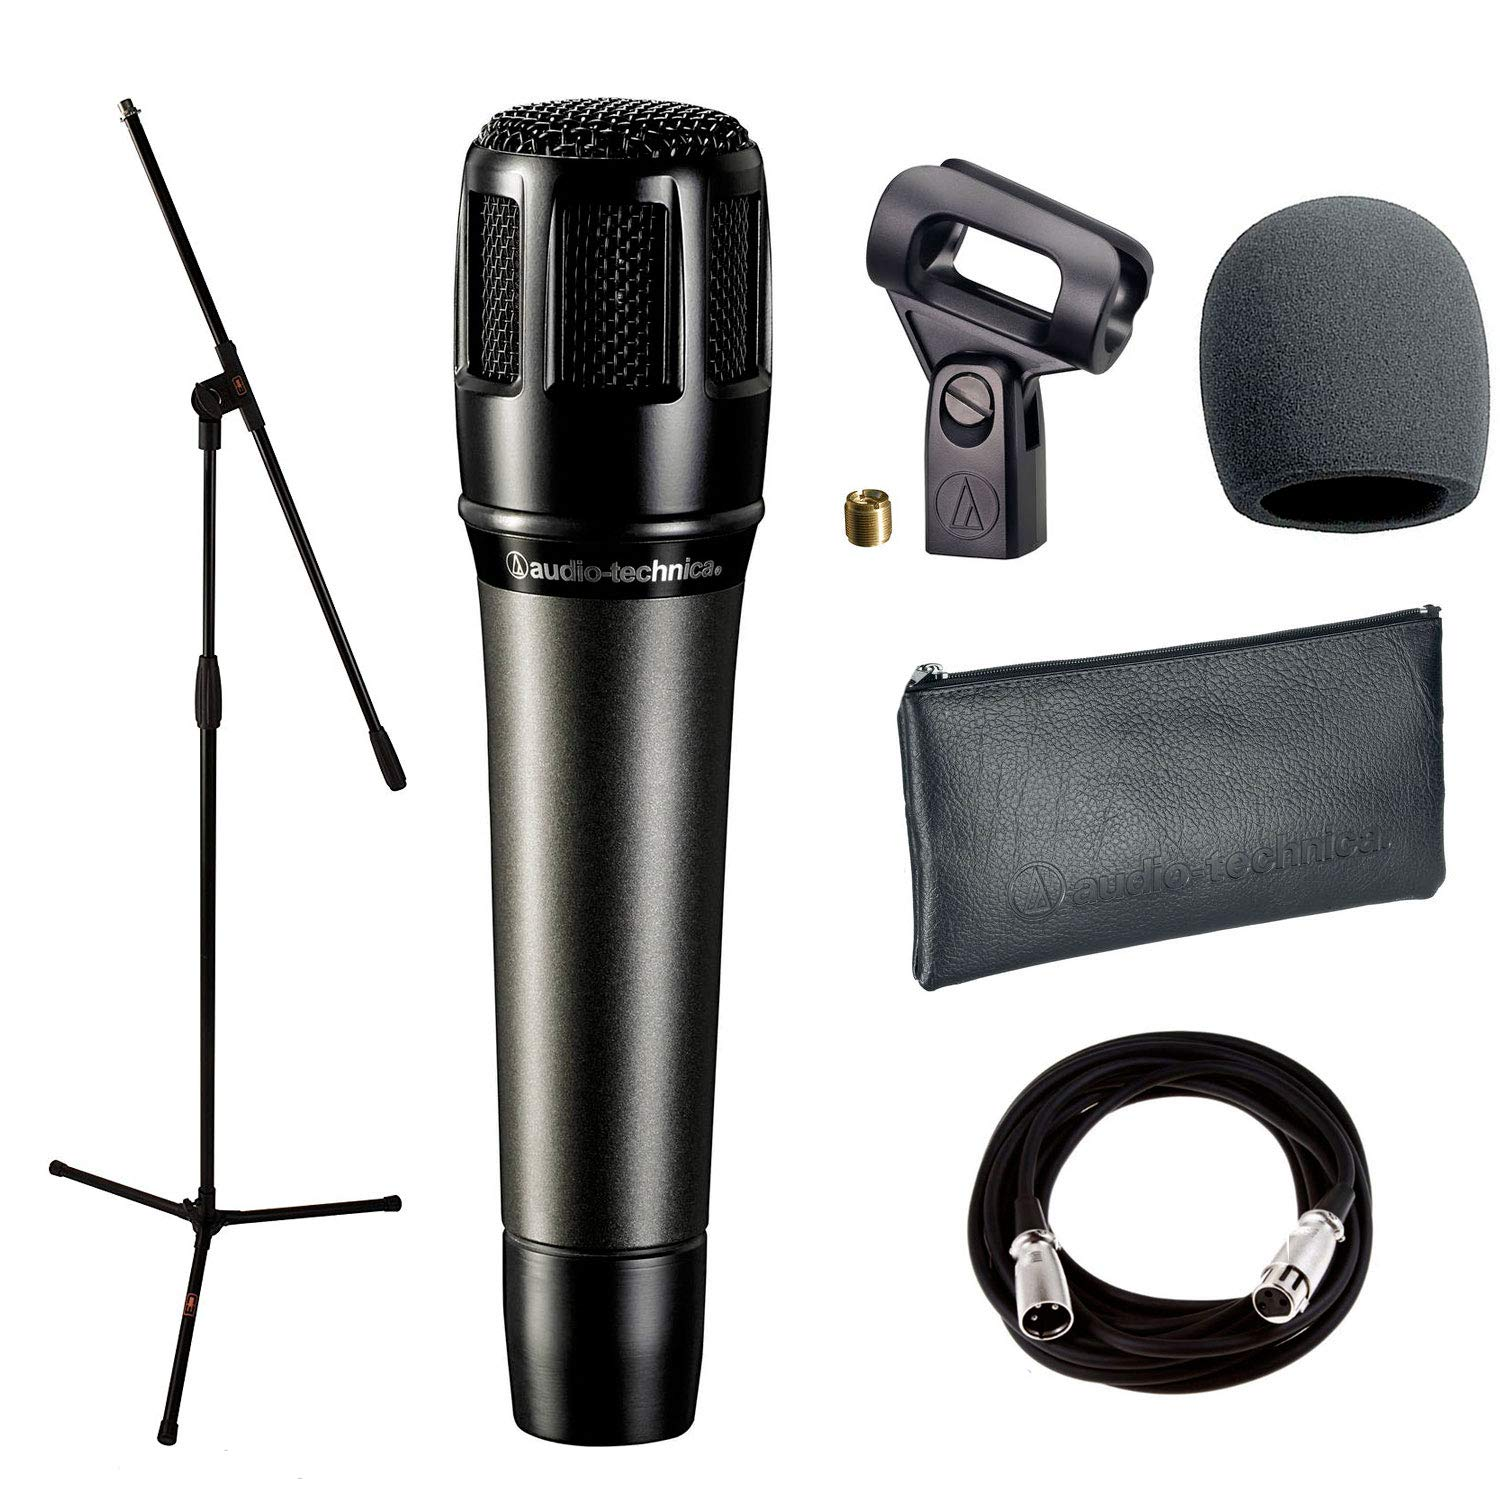 Audio-Technica ATM650 Dynamic Hypercardioid Instrument Microphone + with Mic Clamp & Pouch + Mic Stand + Mic Cable, 20 ft. XLR & Foam Windscreen by Audio-Technica